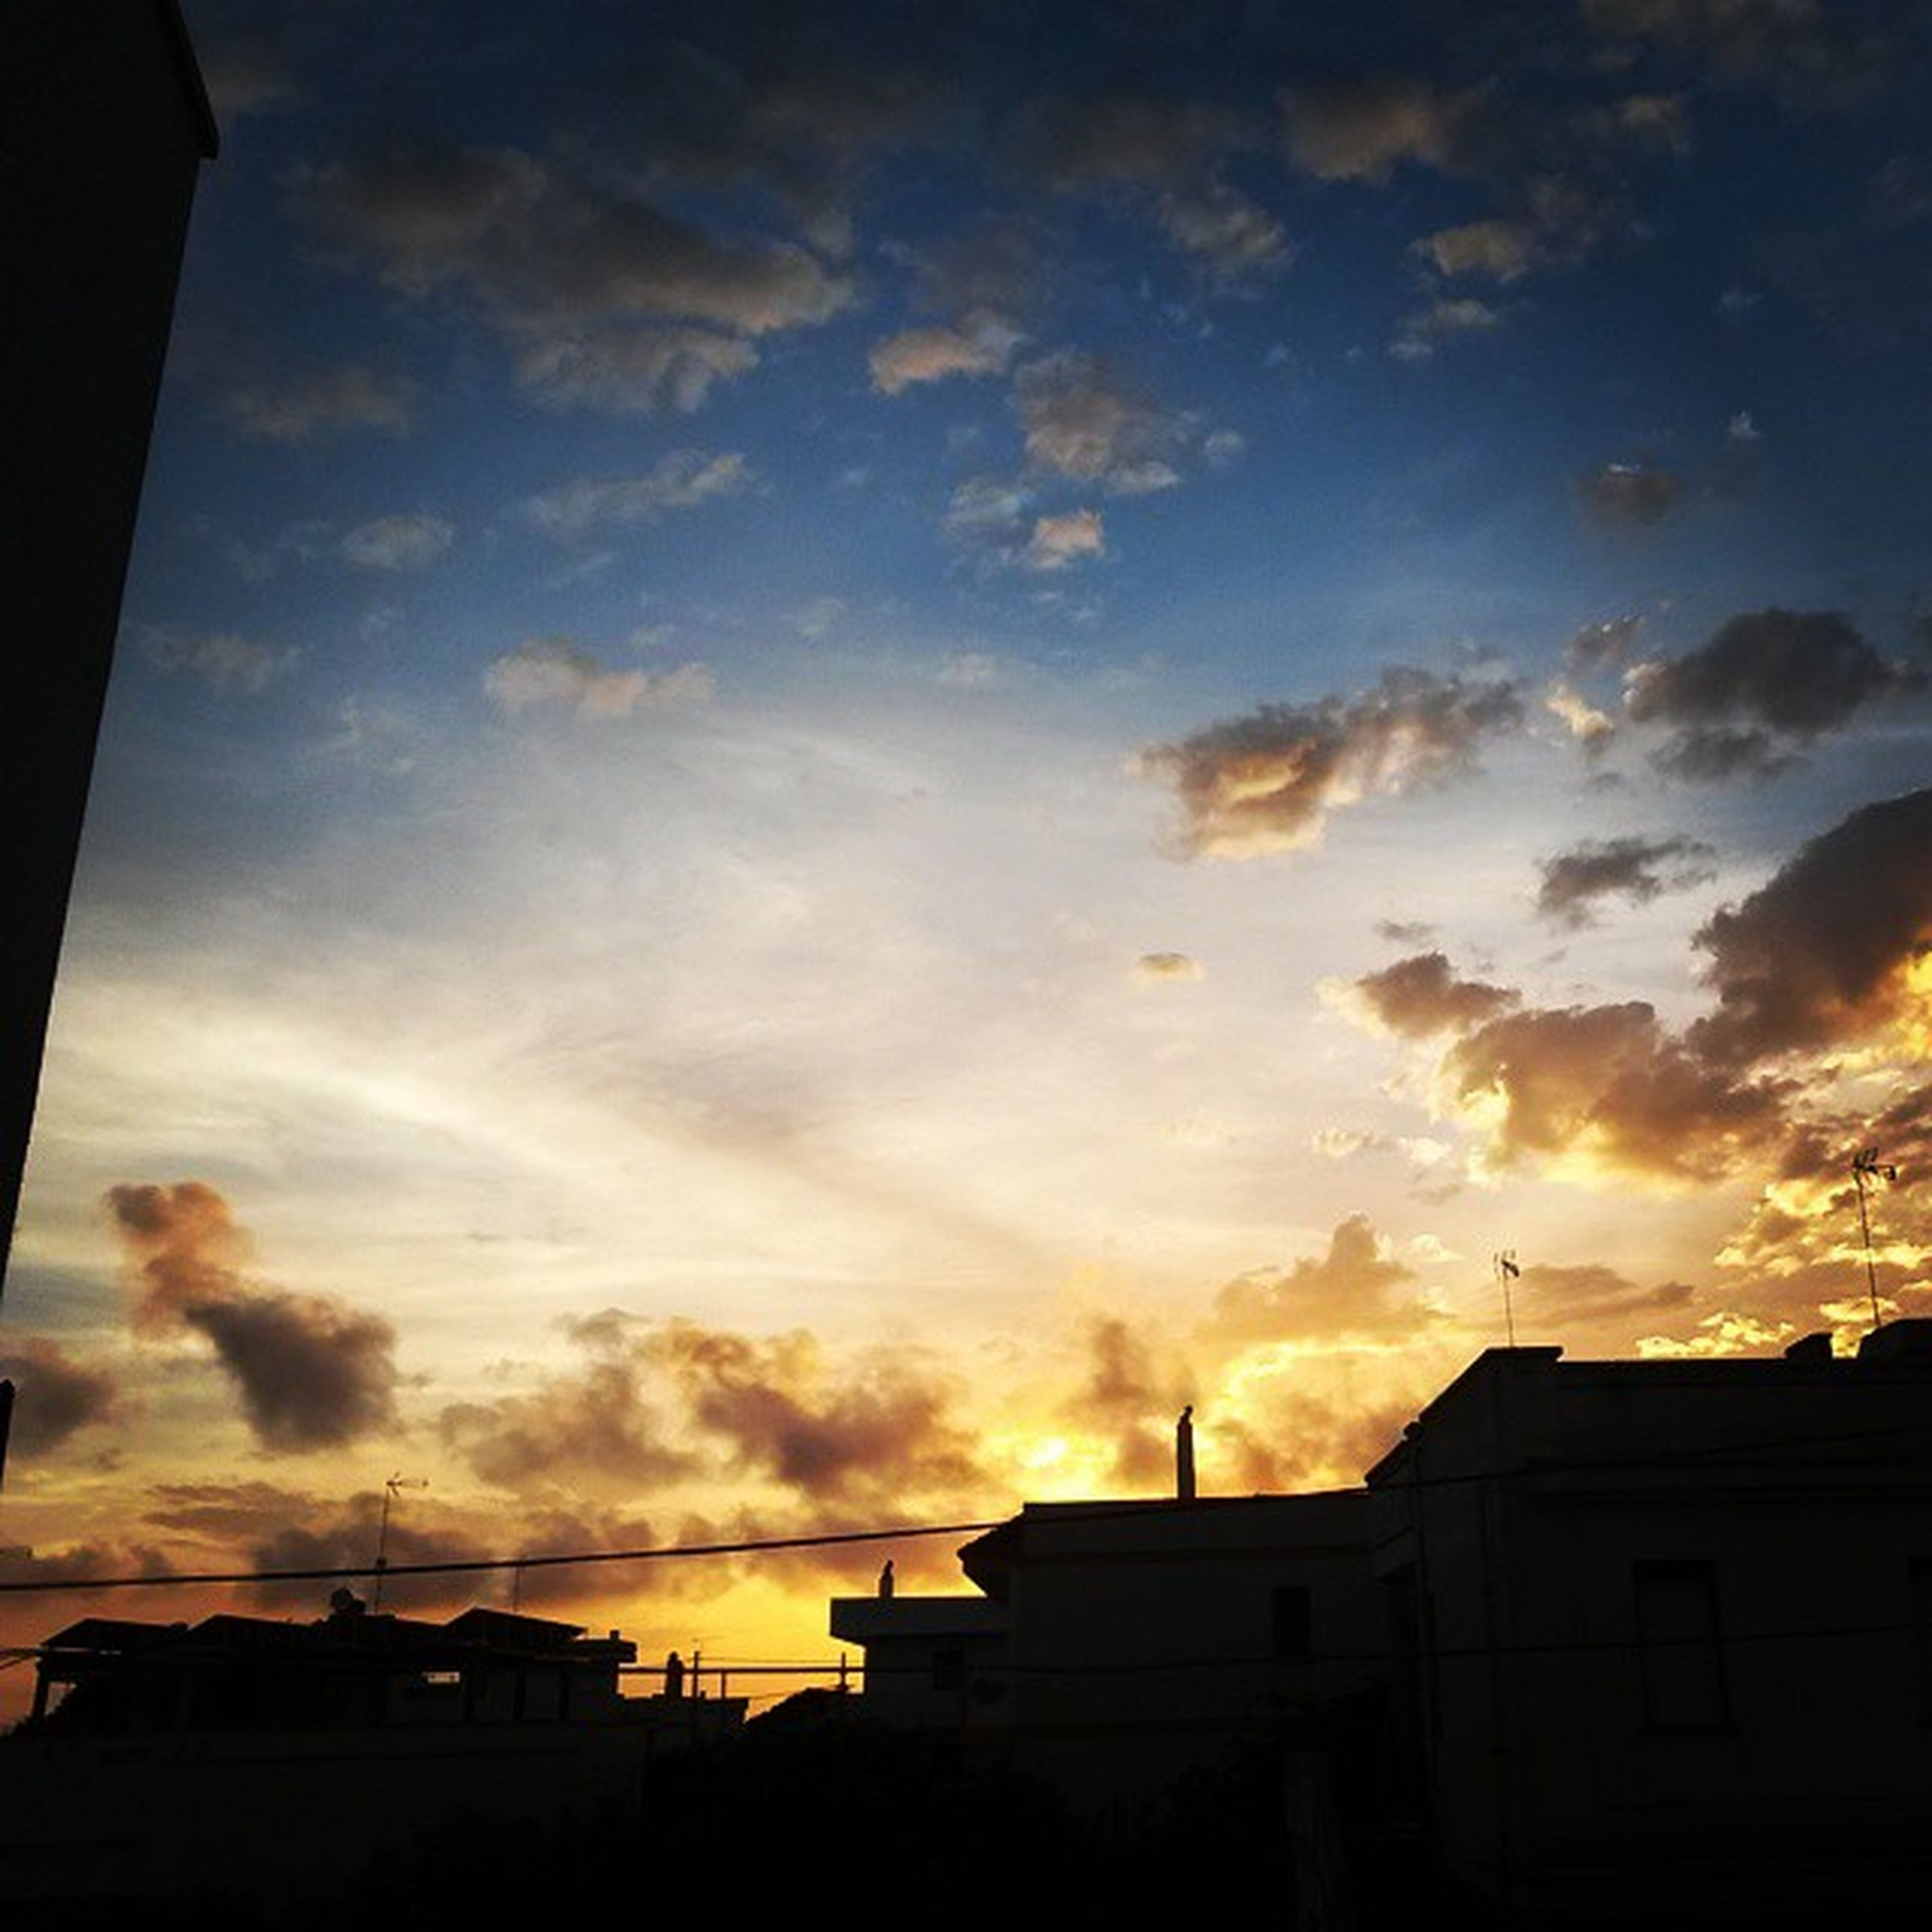 architecture, sunset, building exterior, built structure, sky, low angle view, silhouette, cloud - sky, orange color, house, residential structure, building, residential building, cloud, cloudy, dramatic sky, outdoors, city, nature, no people